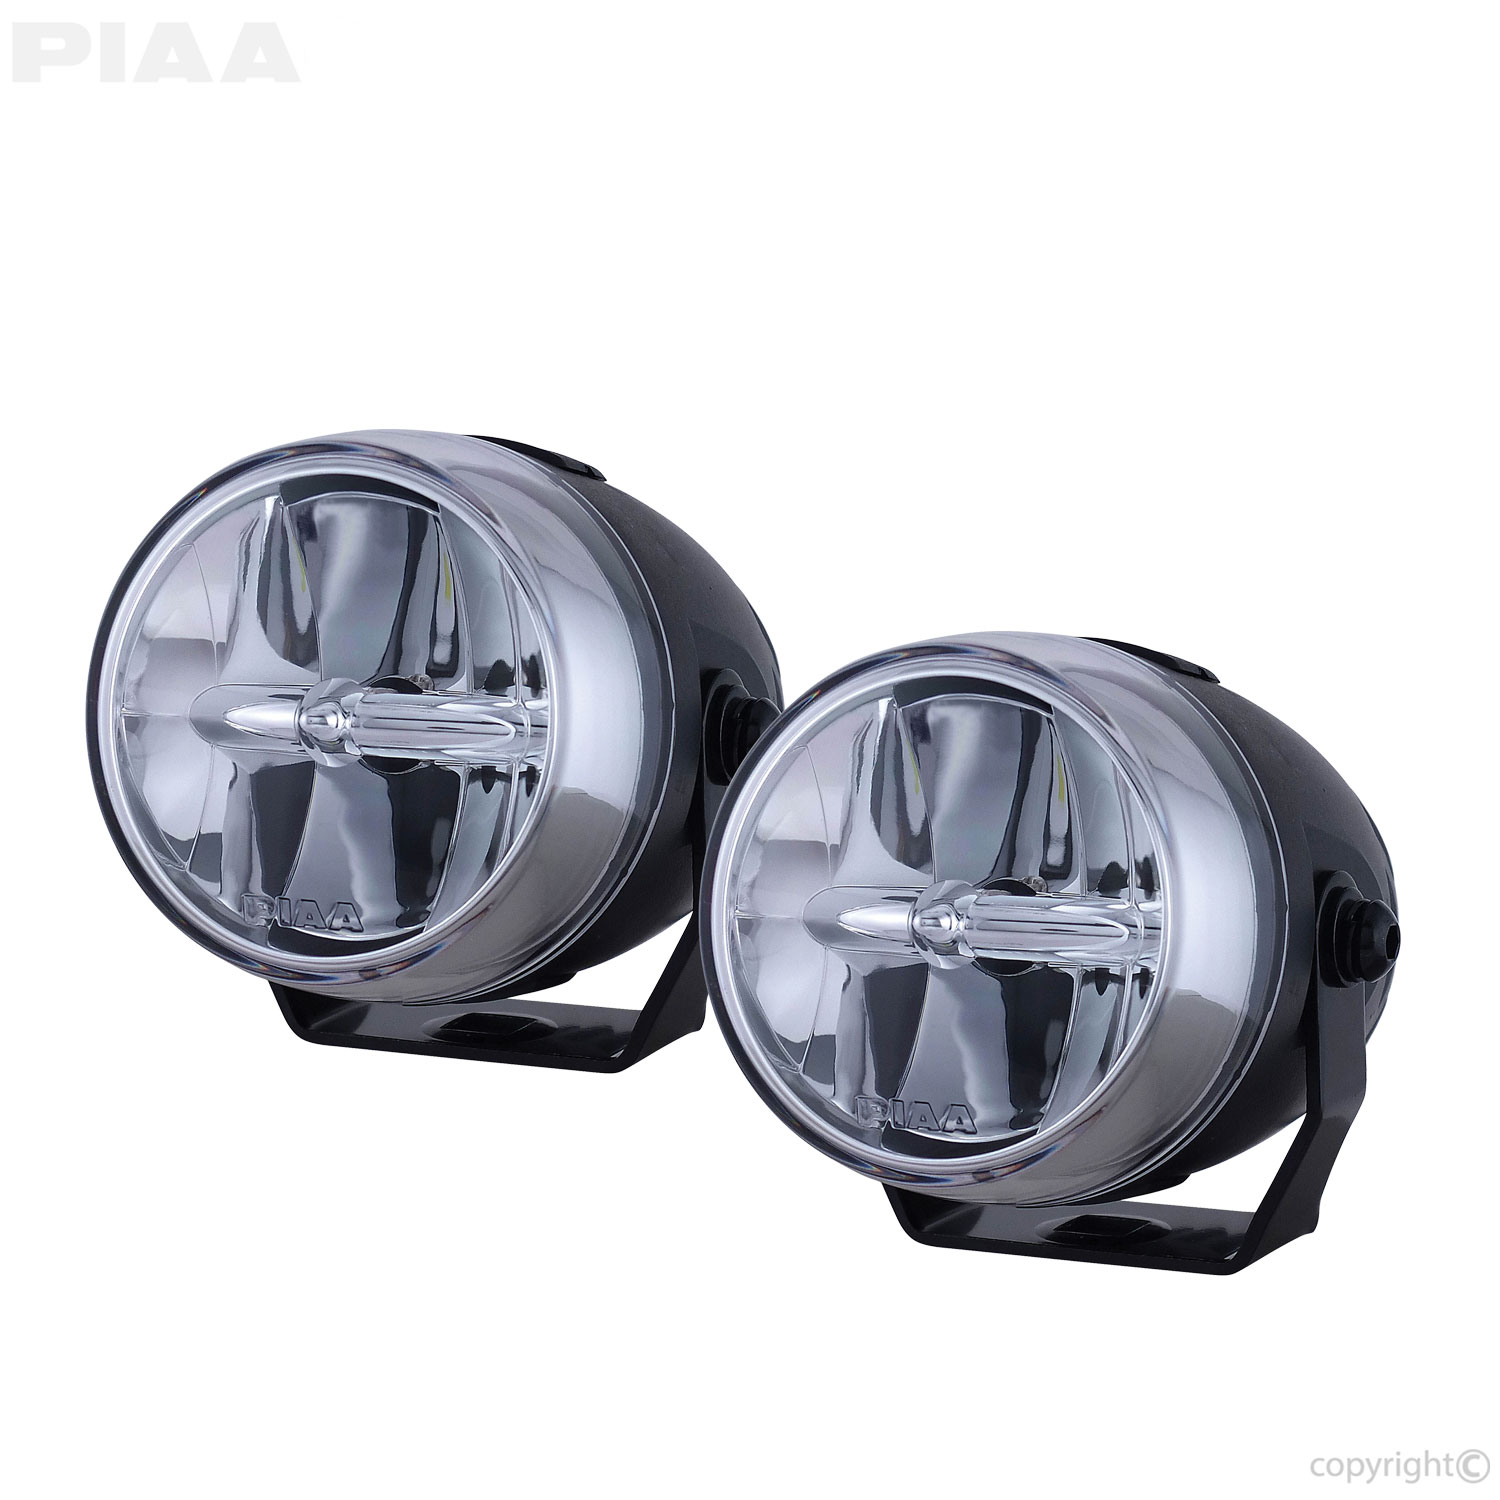 motorcycle via amazing accent on pin world lights motorcycles xkglow led image bike com for lighting